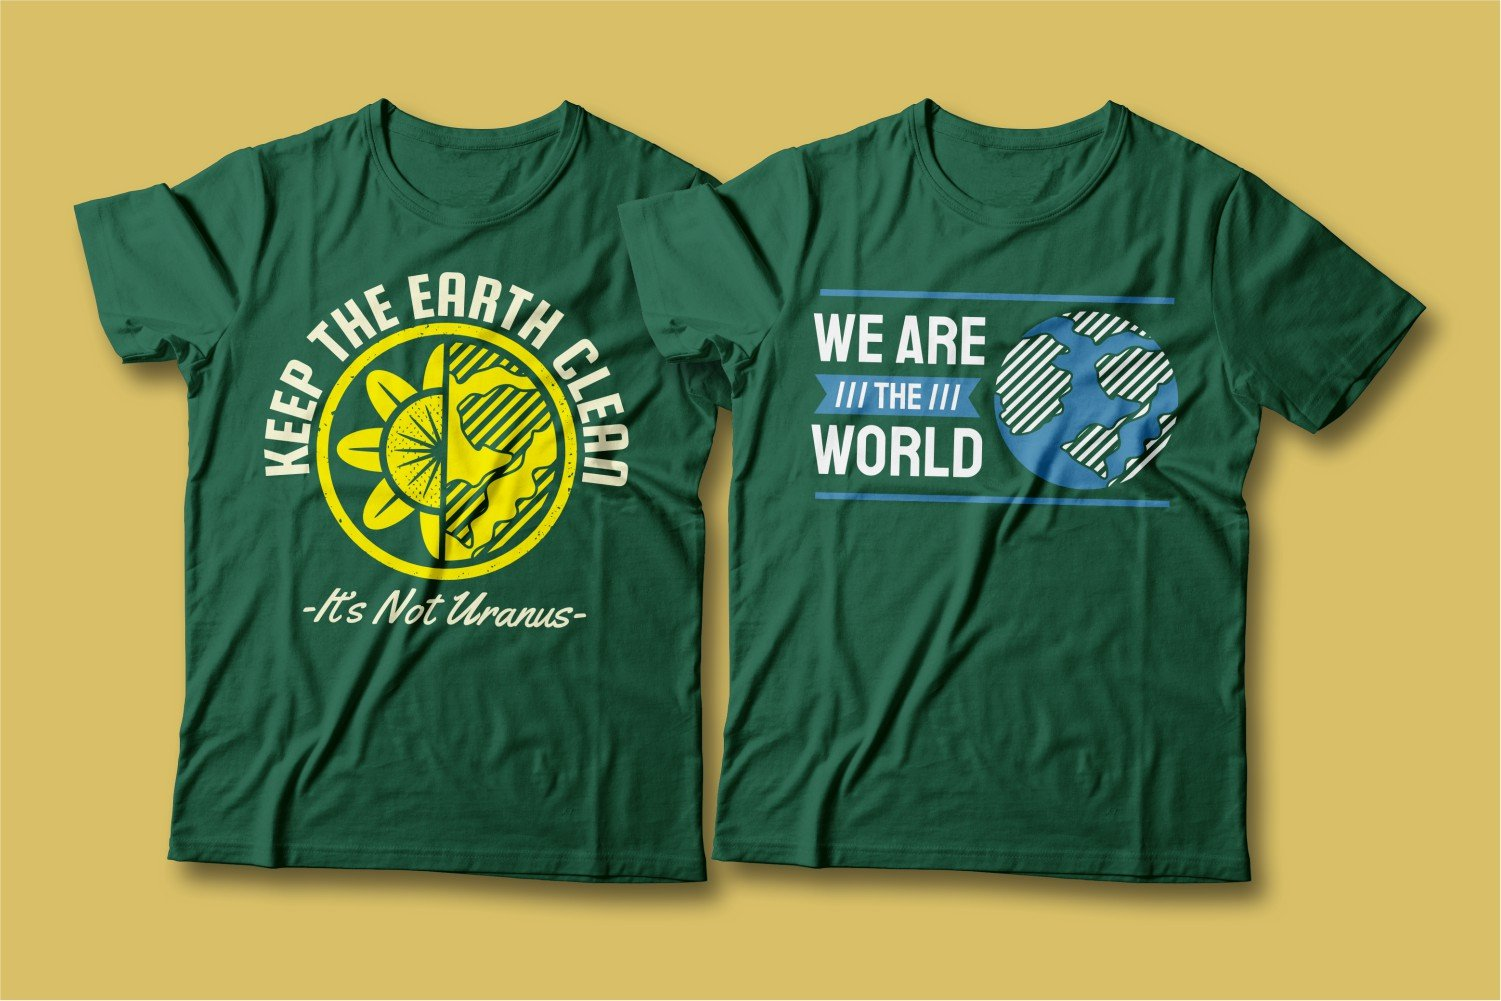 Green T-shirts with the image of the green planet.